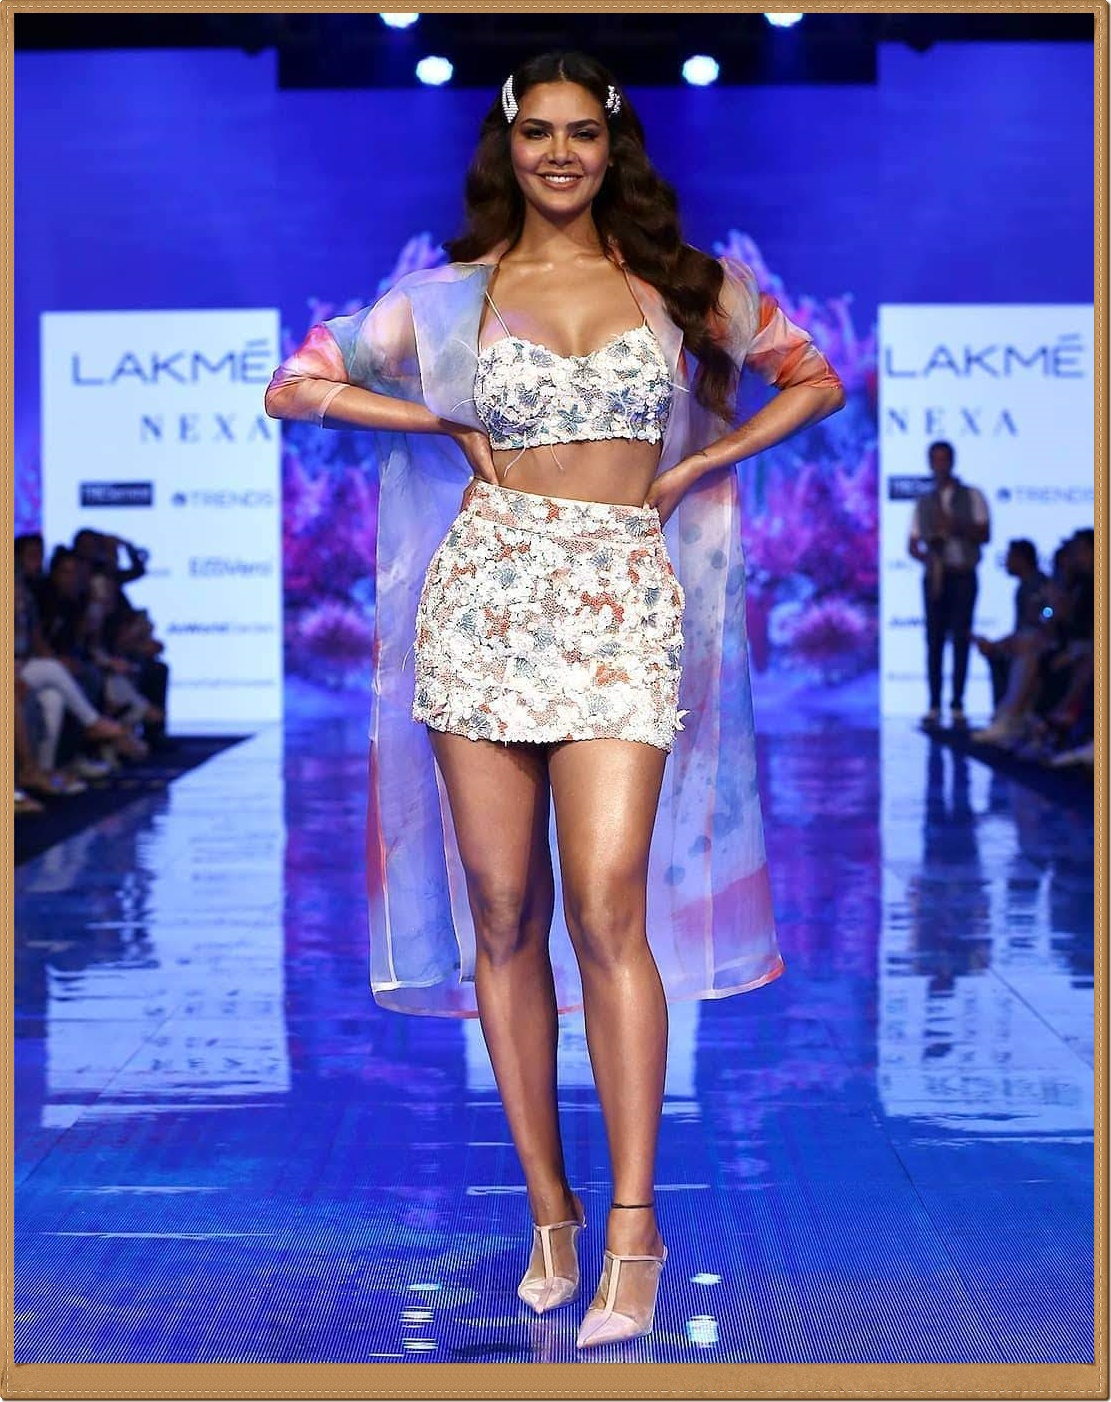 lakme-fashion-week-2020-2